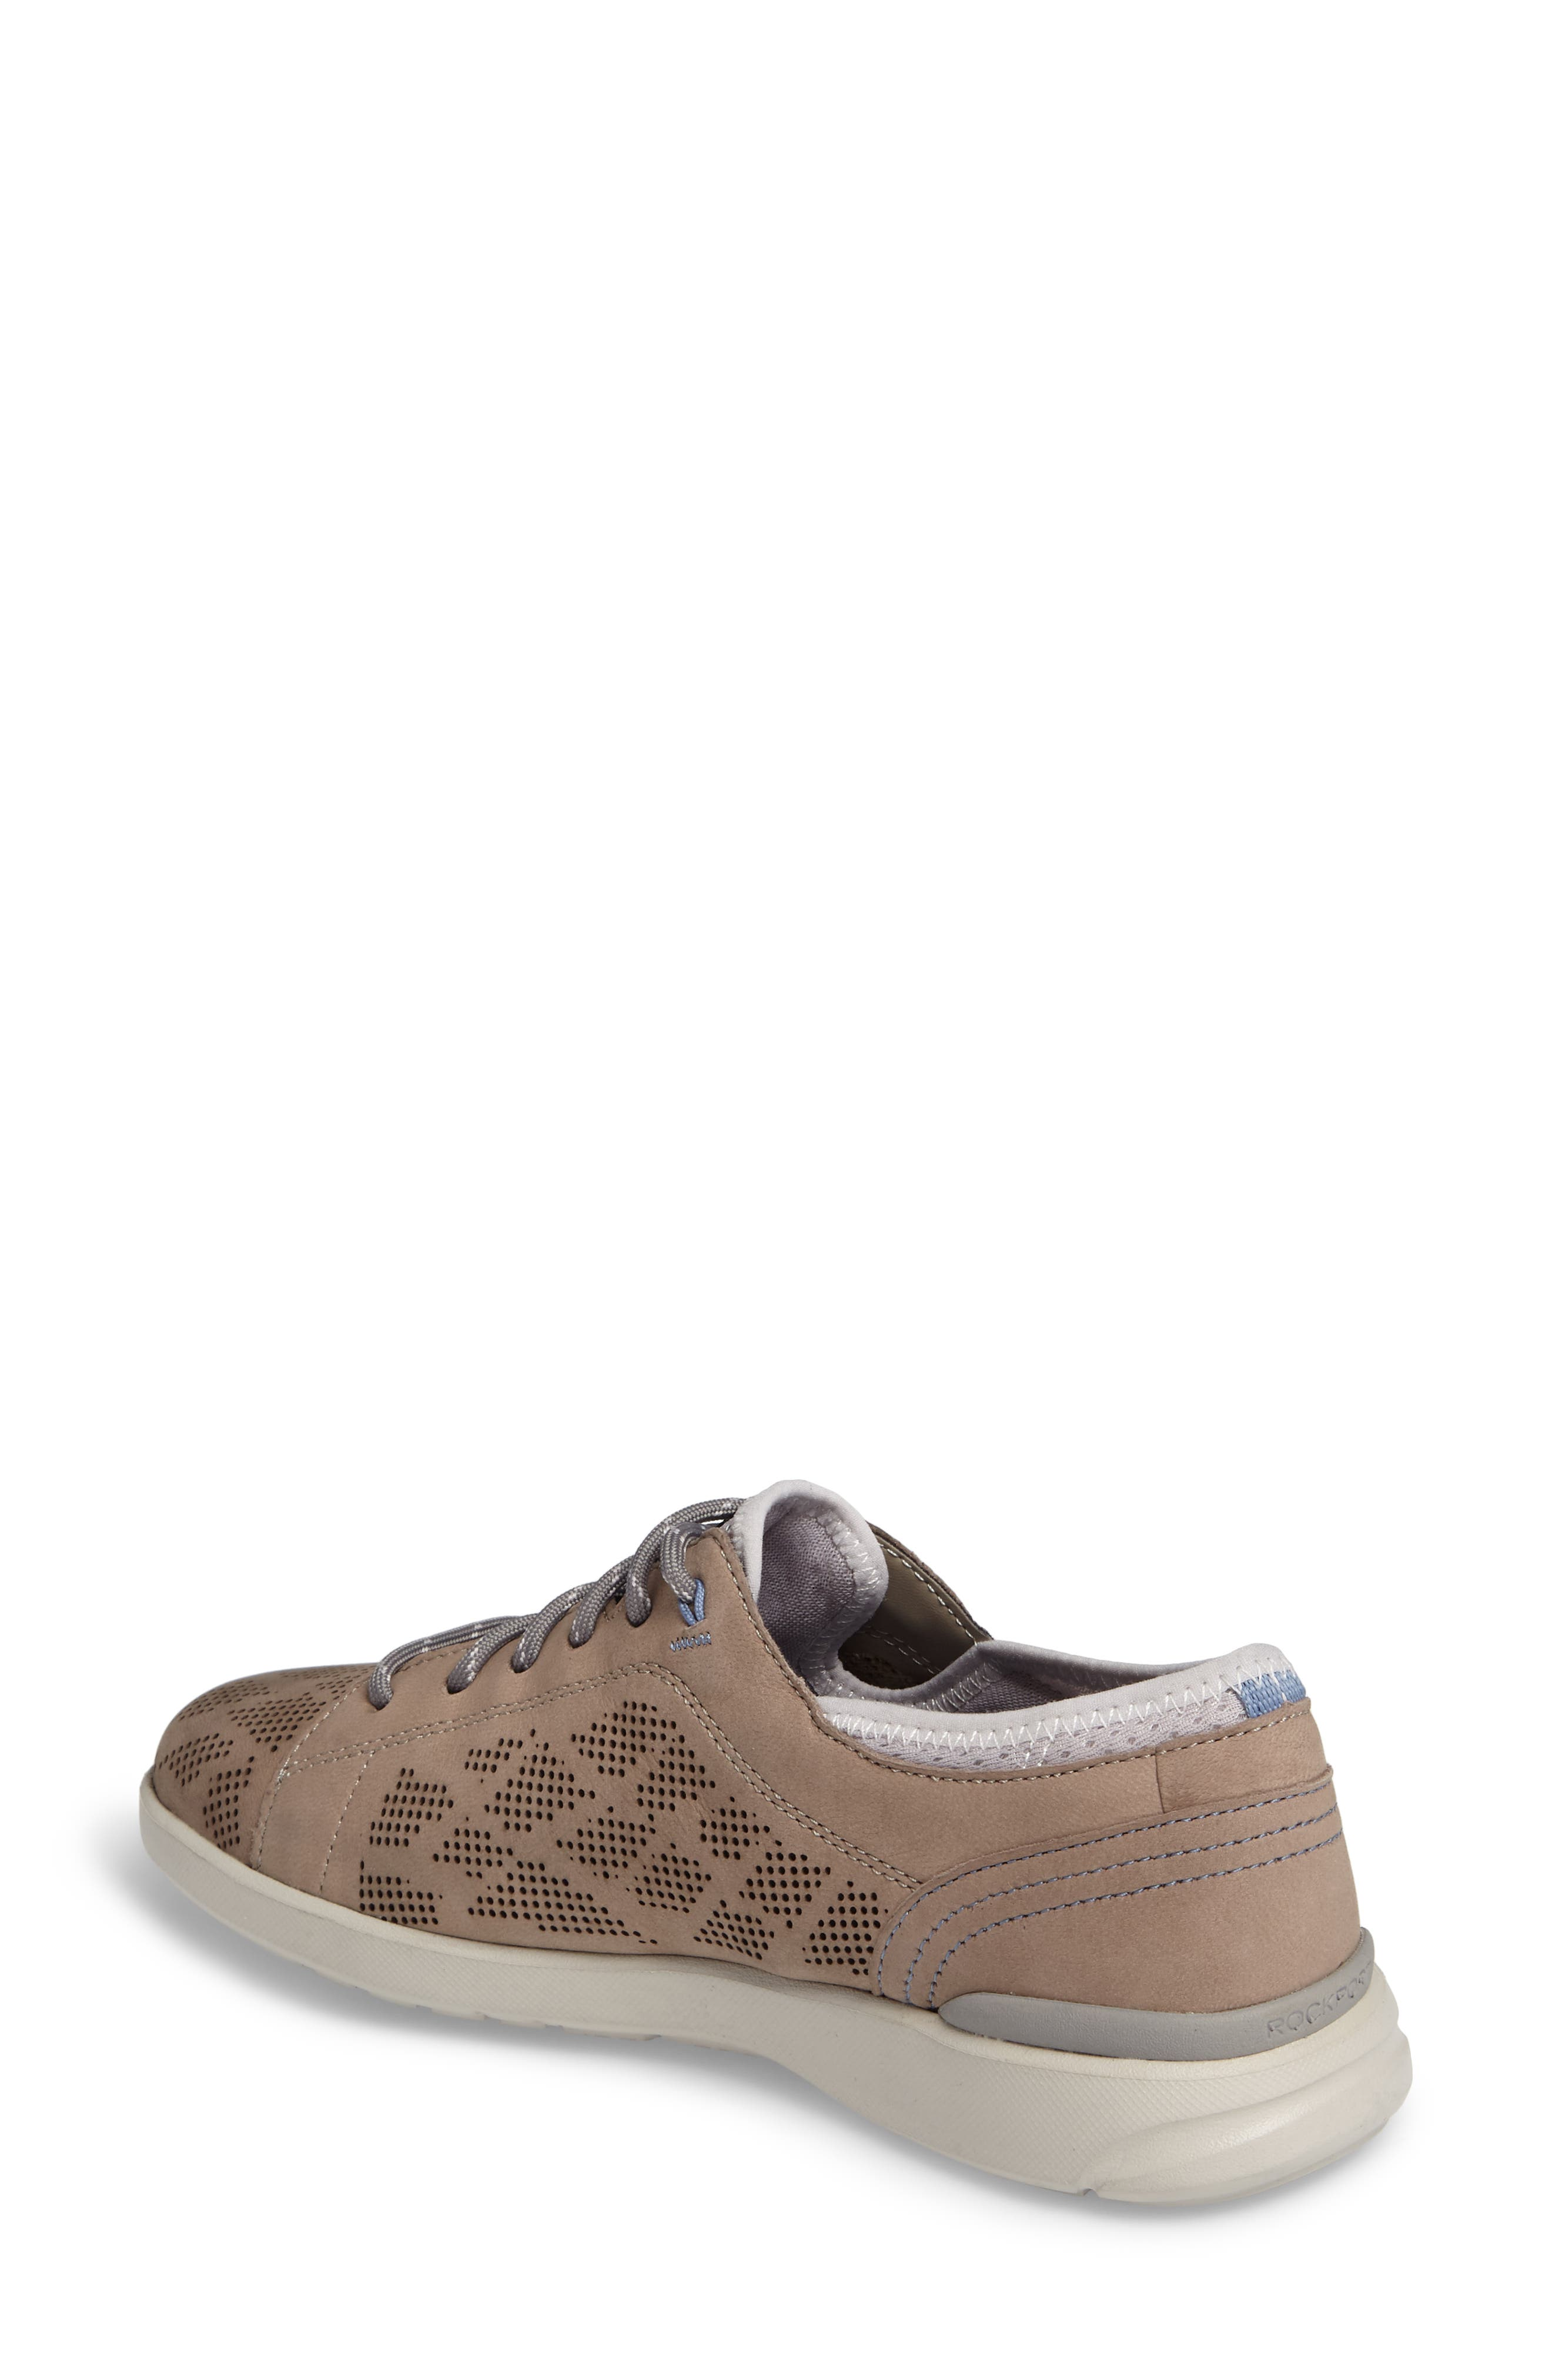 truFLEX Perforated Sneaker,                             Alternate thumbnail 2, color,                             Sand Leather